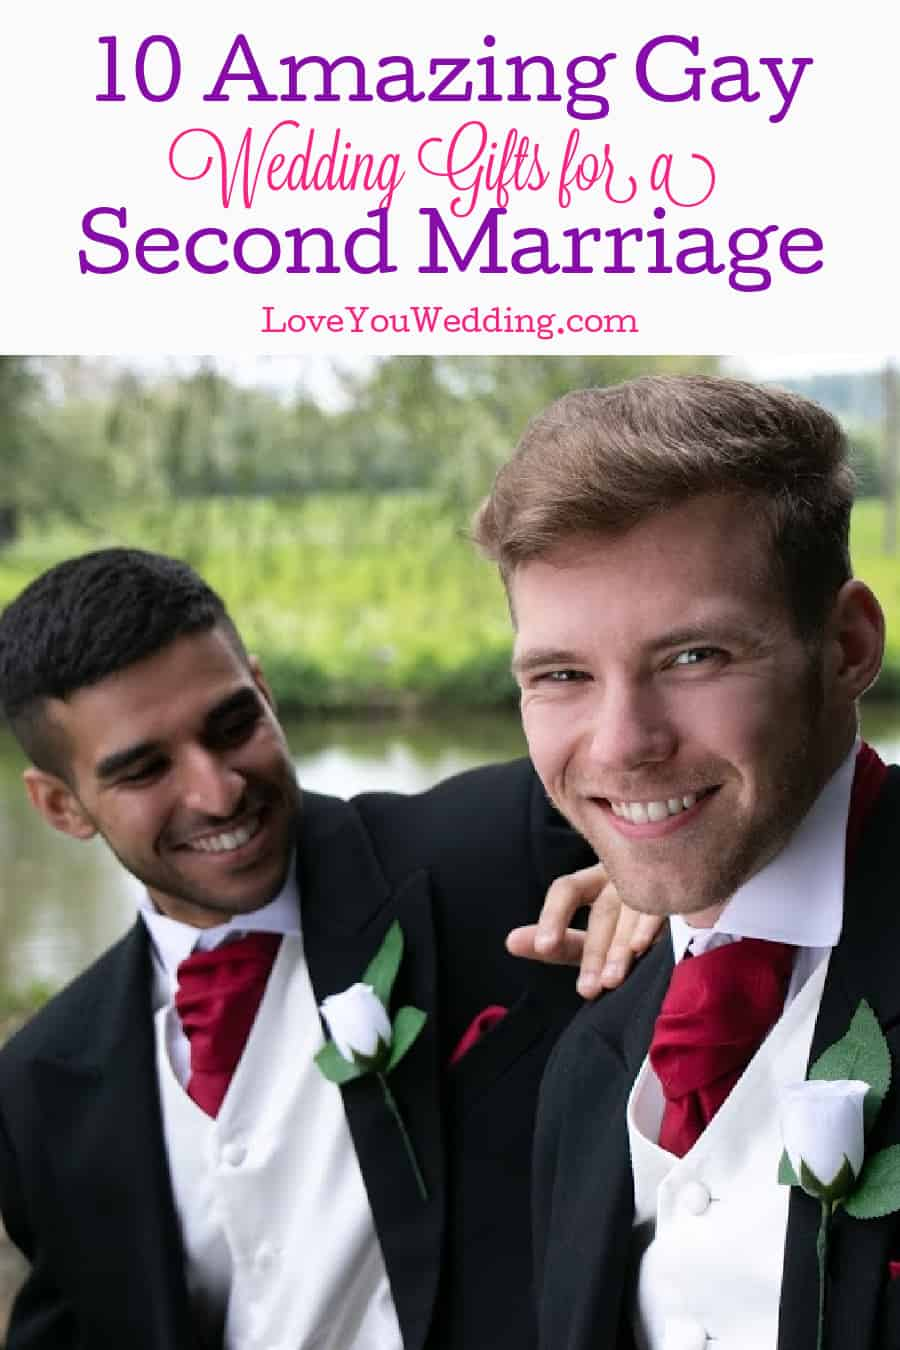 Gay grooms dressed in tuxedos